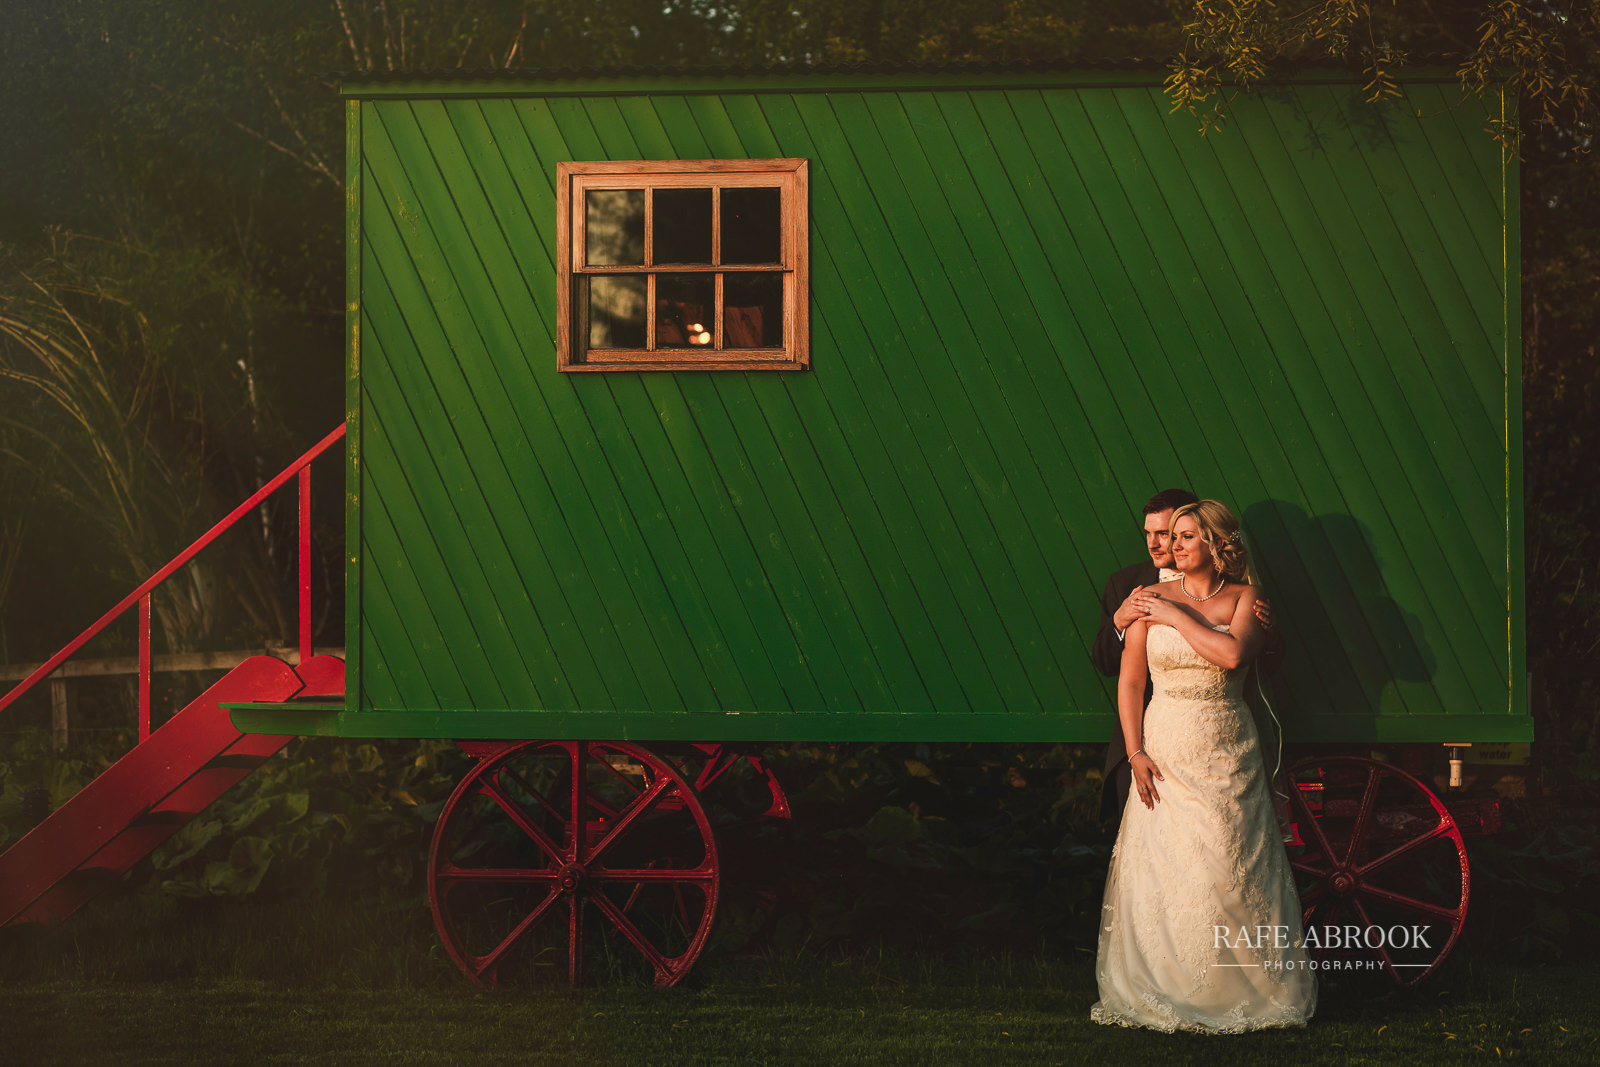 south farm wedding royston hertfordshire wedding photographer rafe abrook photography-1925.jpg